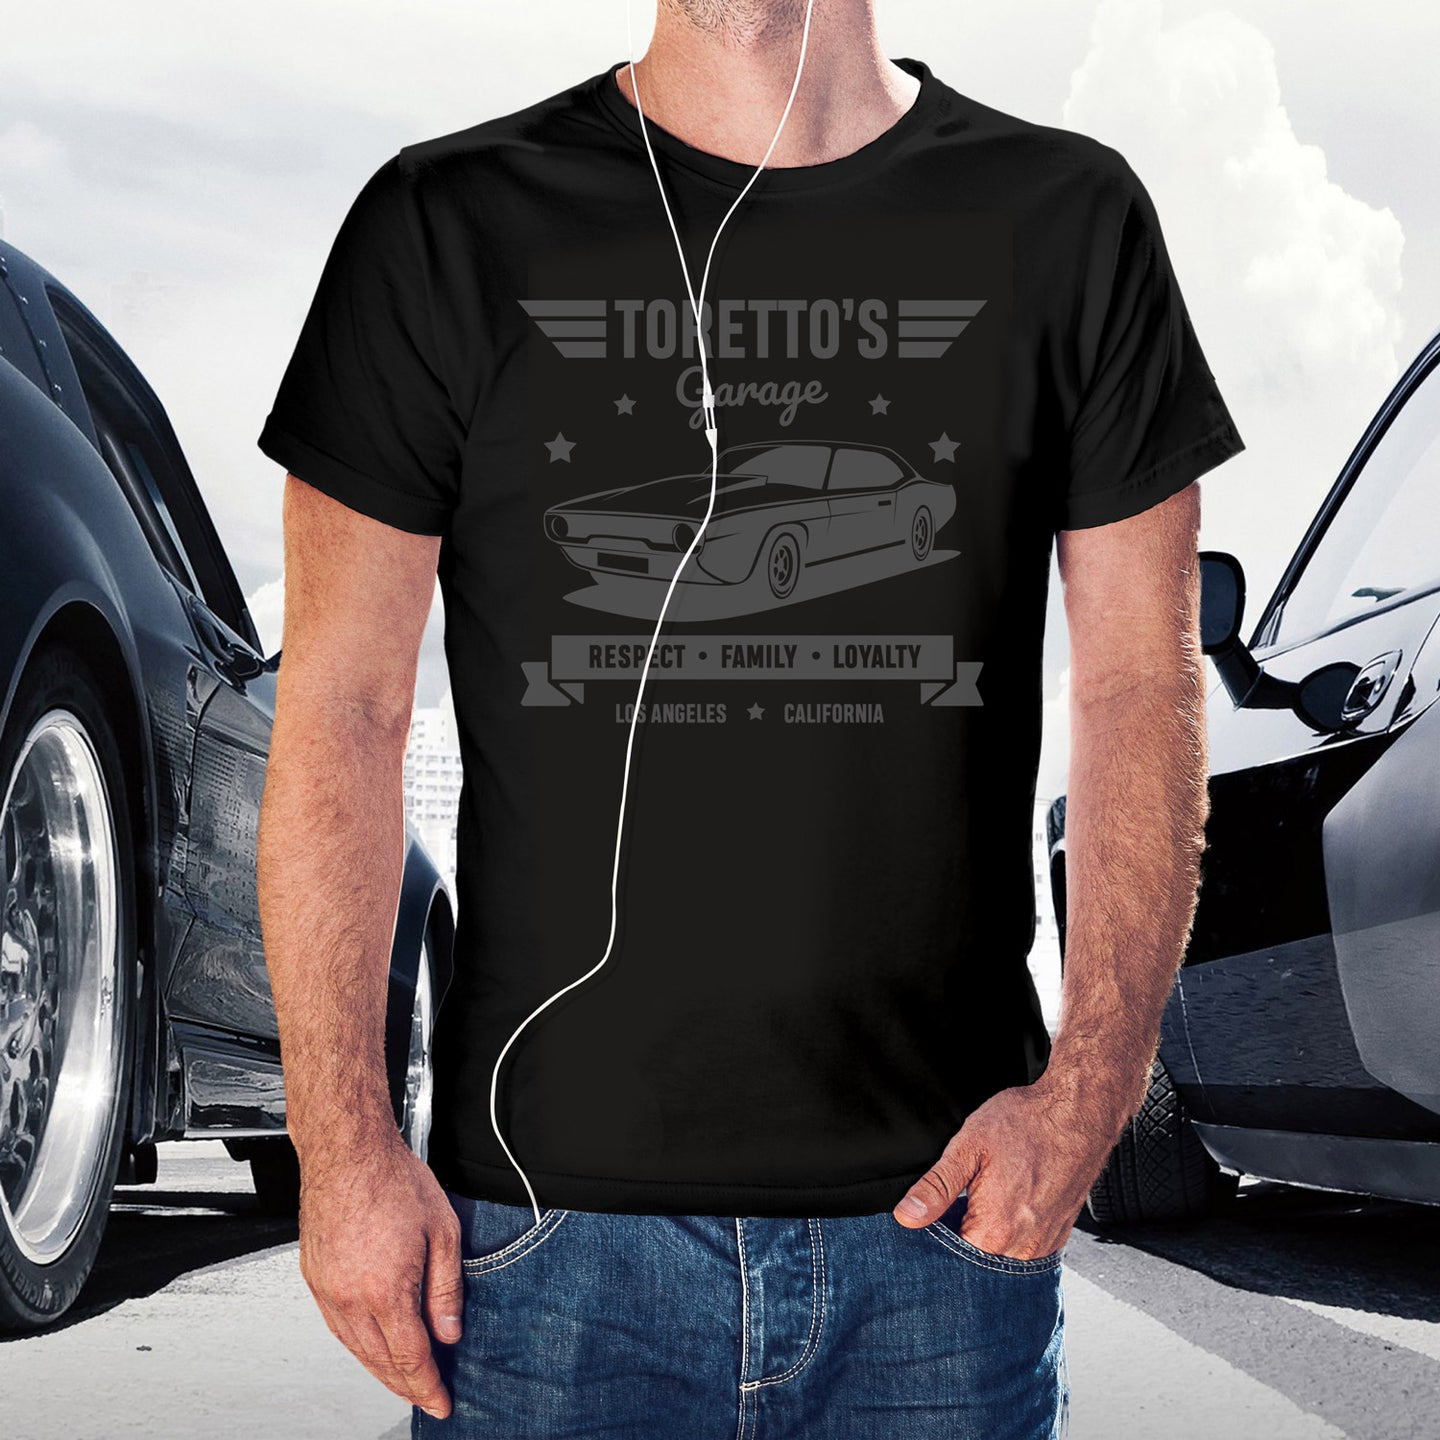 T-shirt Toretto's Garage